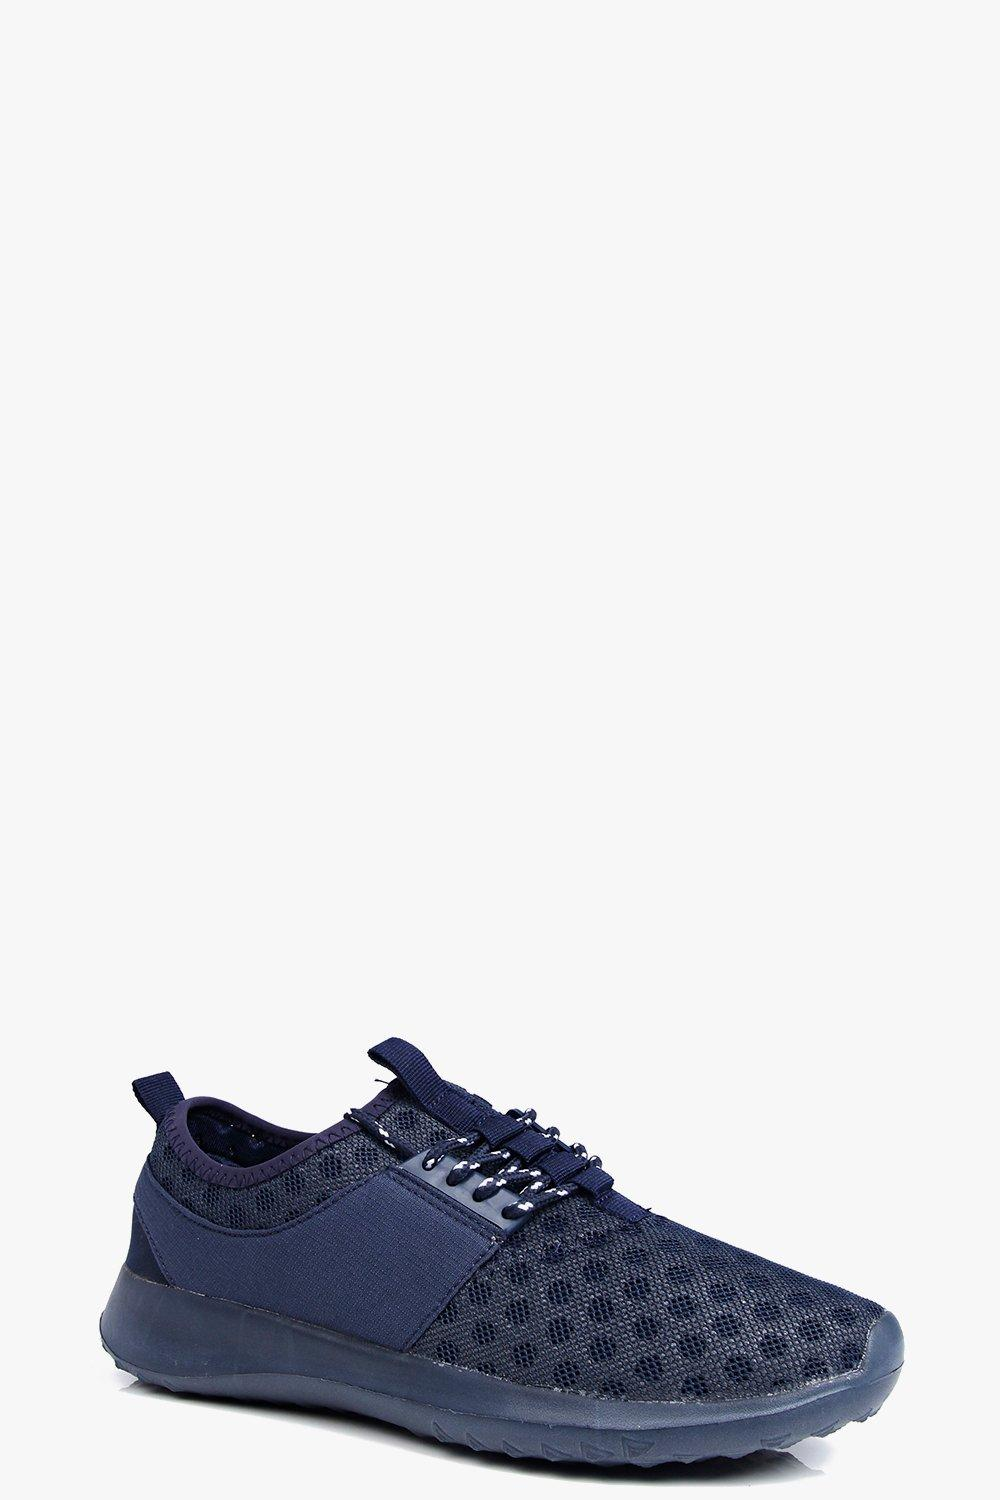 Imogen Polka Mesh Lace Up Trainer